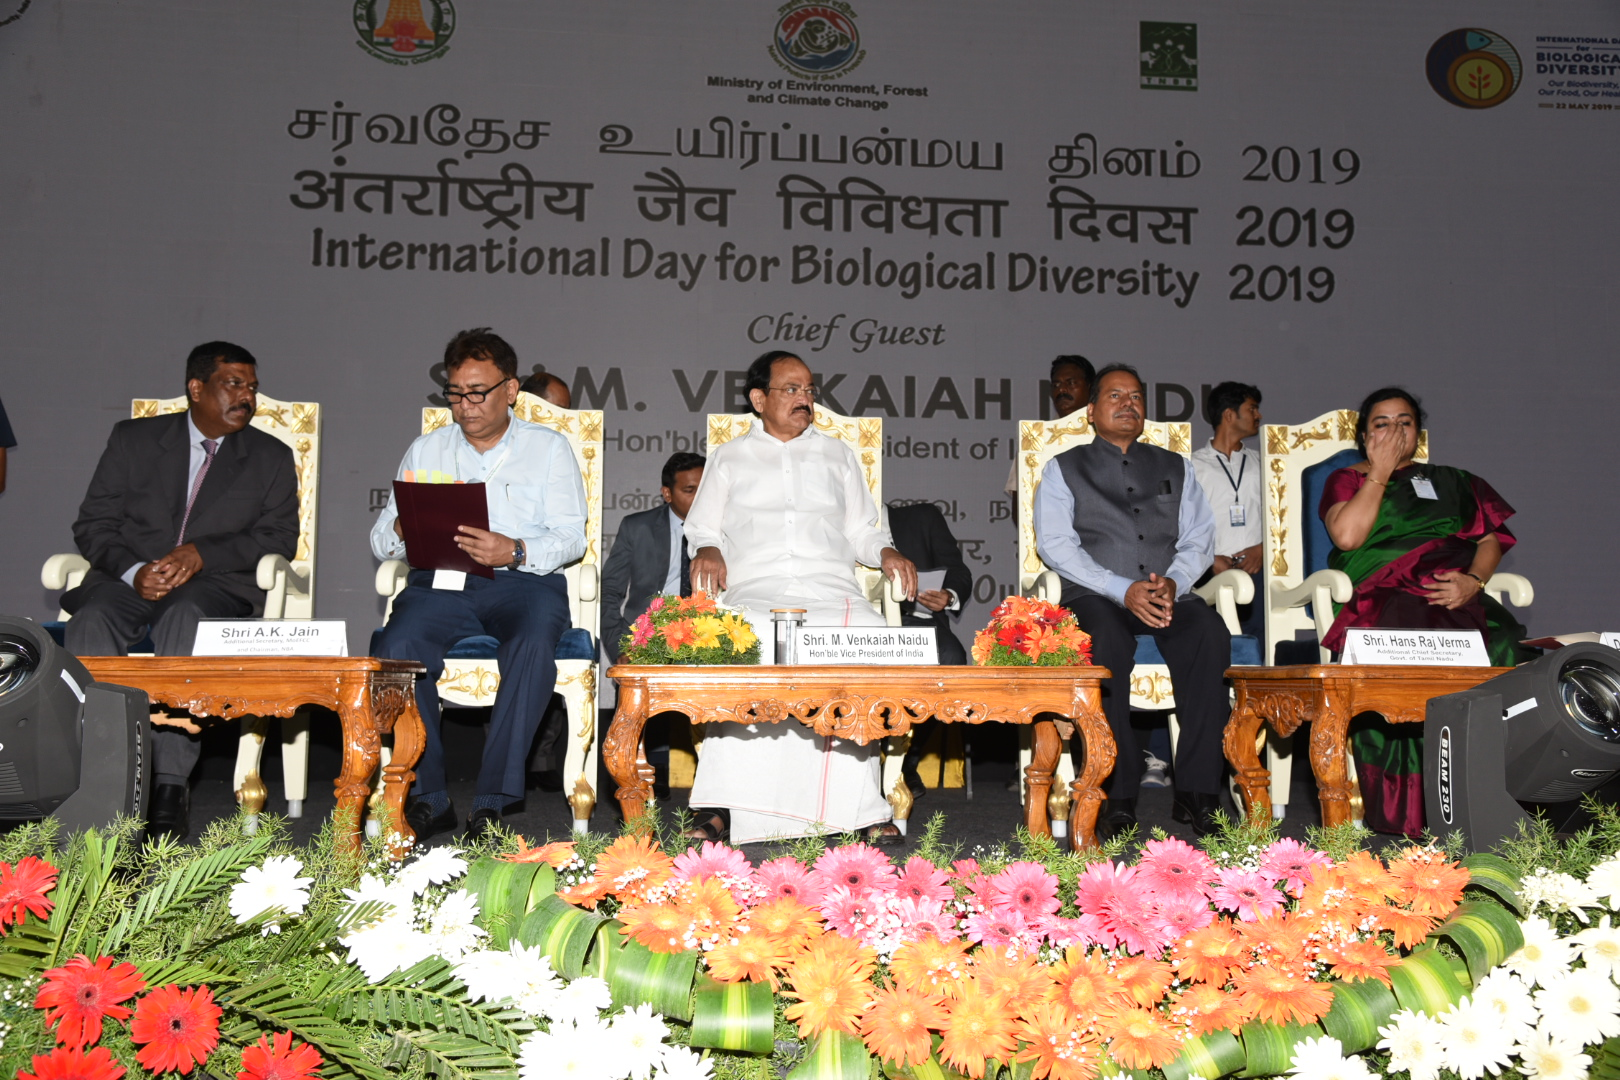 The Vice President, Shri M. Venkaiah Naidu at an event to inaugurate the International Day for Biological Diversity 2019, in Chennai on May 22, 2019.